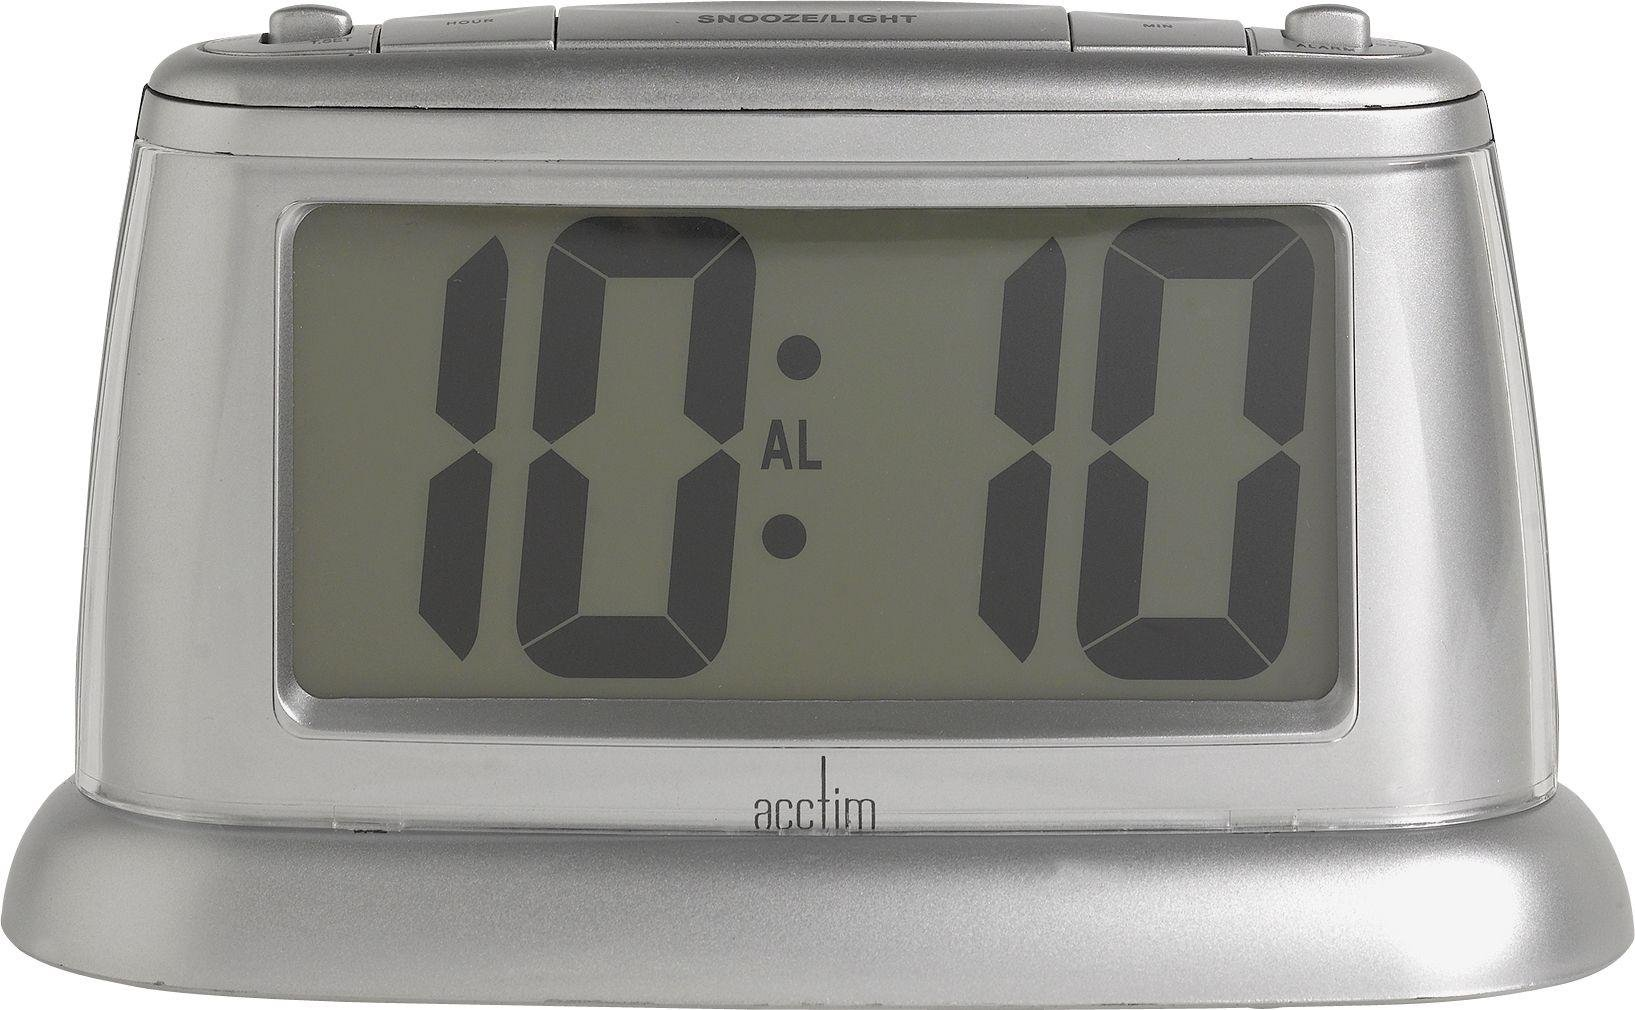 Acctim Smartlight Extra Large Alarm Clock